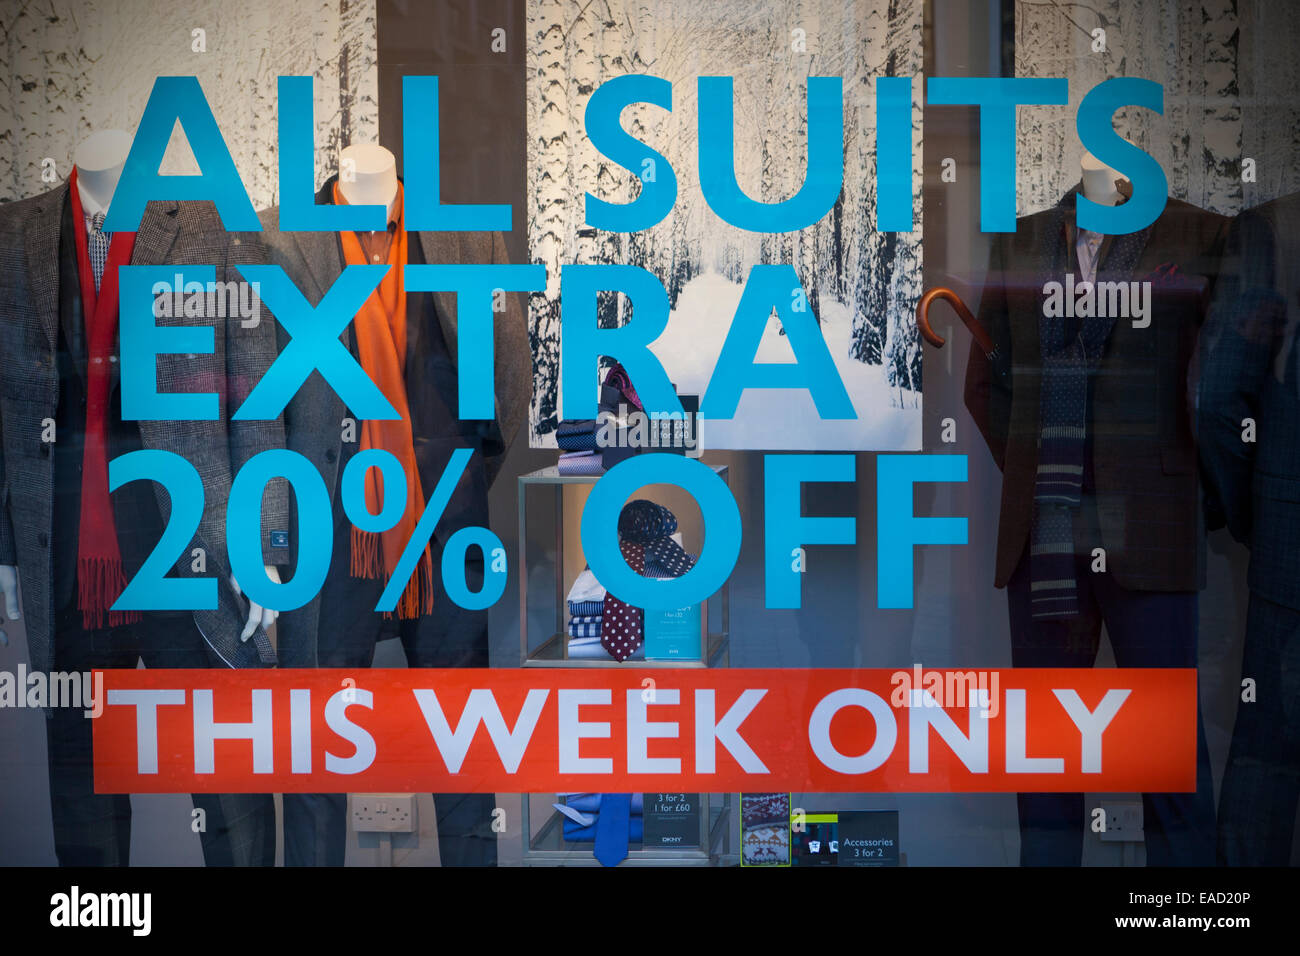 All Suits Extra 20 Twenty Percent Off High Street Shops Stores With